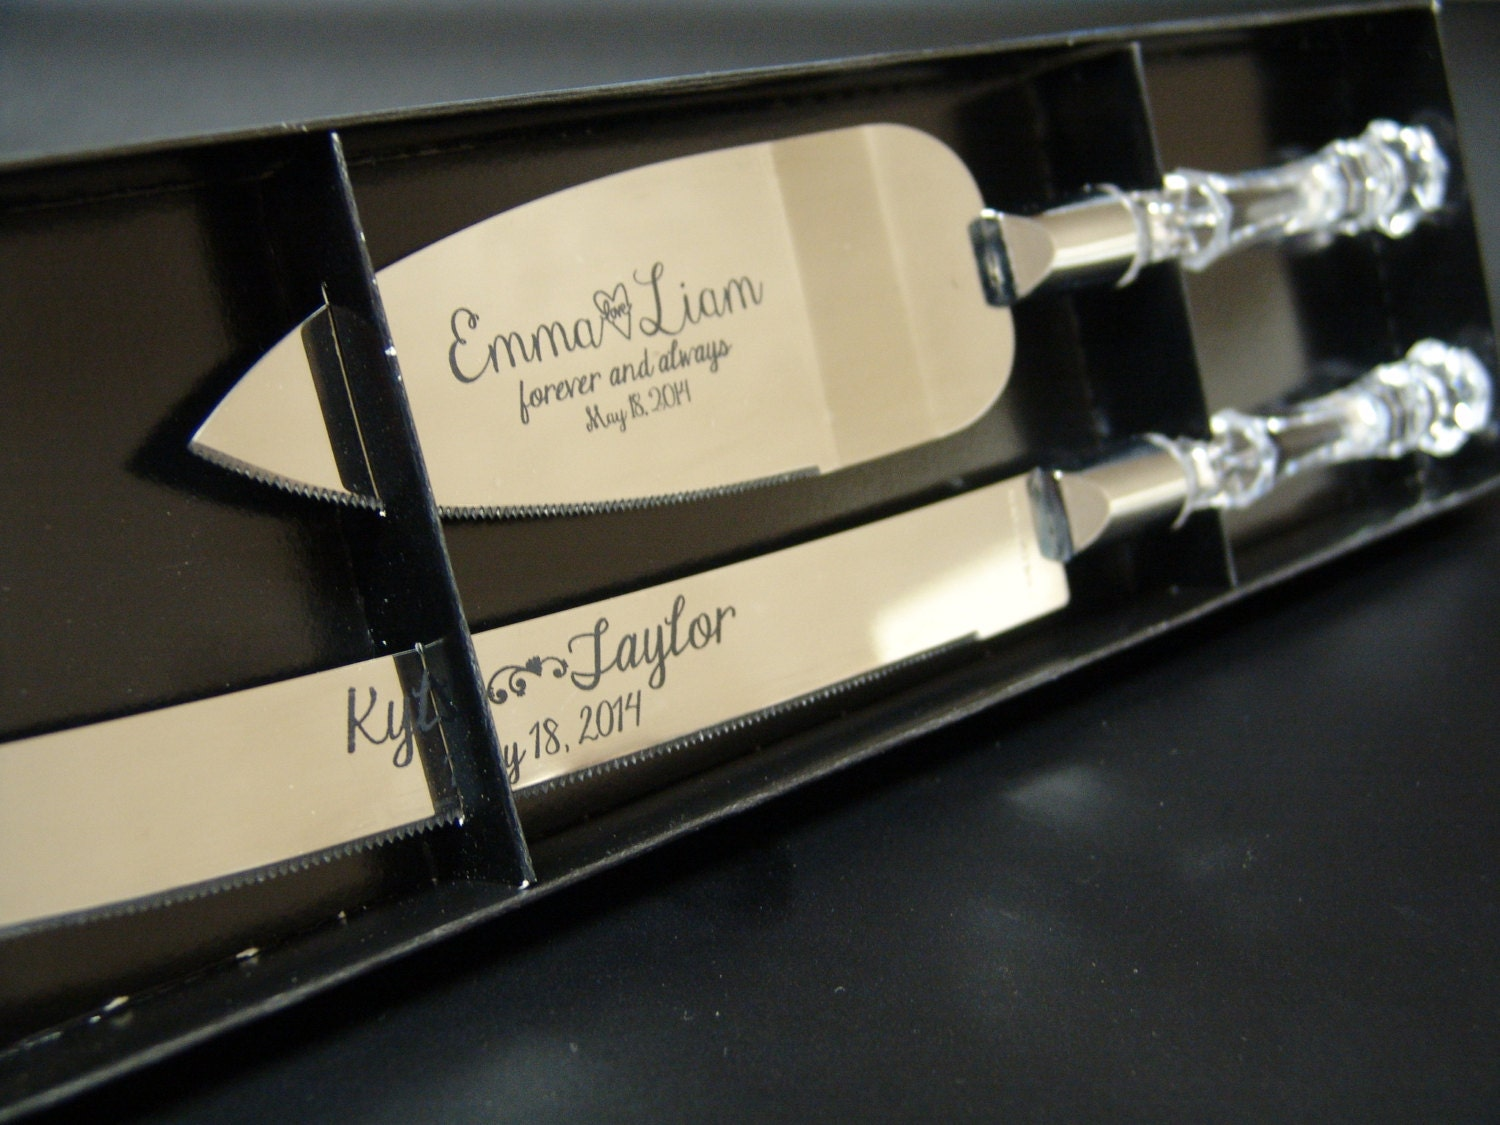 engraved cake serving set for weddings and anniversary knife